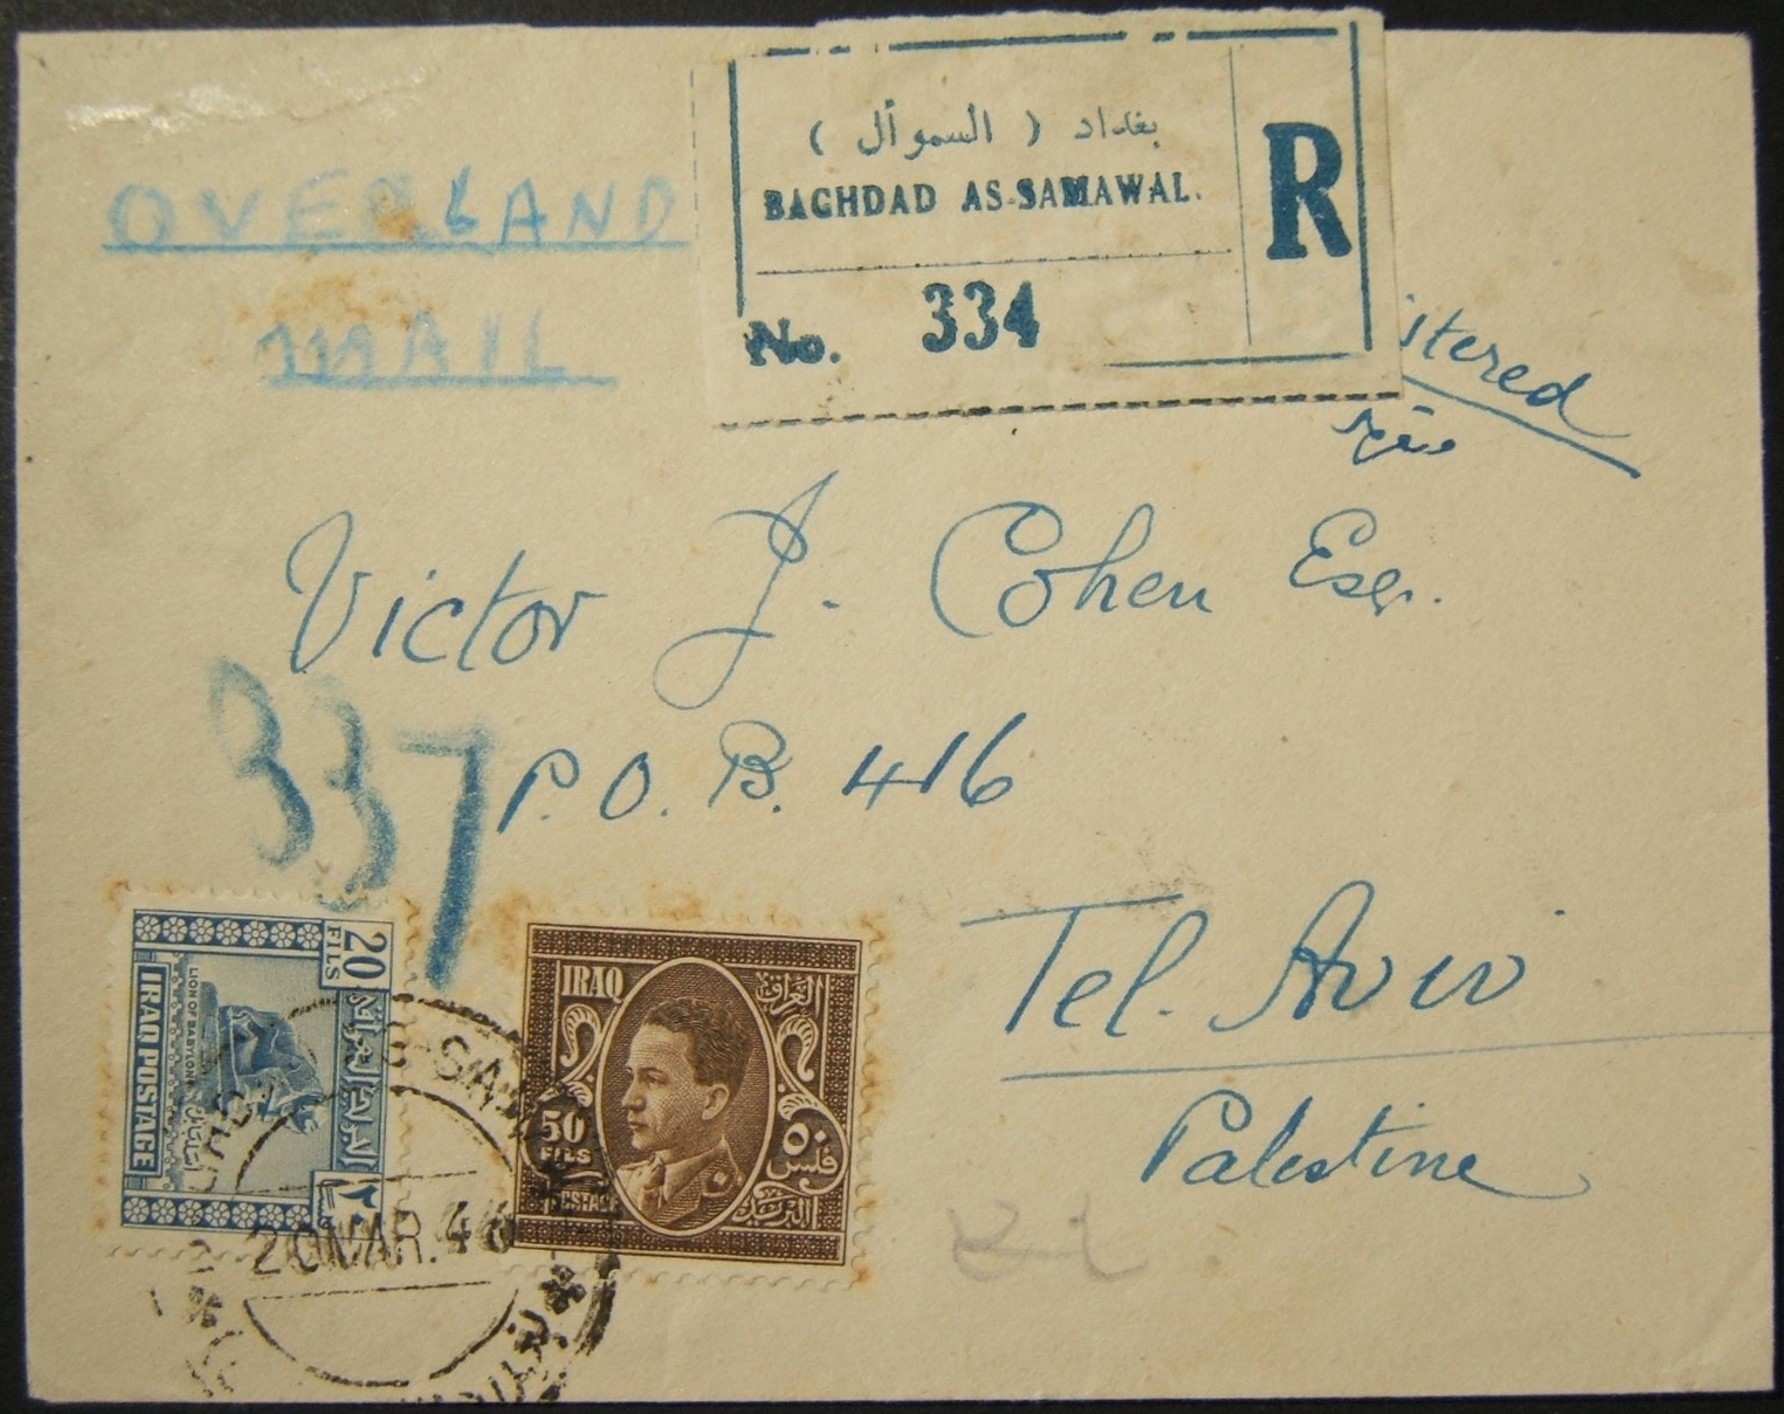 Westbound mail: 20 MAR 1946 reg. Jewish family correspondence cv ex BAGHDAD to TLV, franked 60F & tied by strike of BAGHDAD AS-SAMAWAL pmk + 1x on back; marked